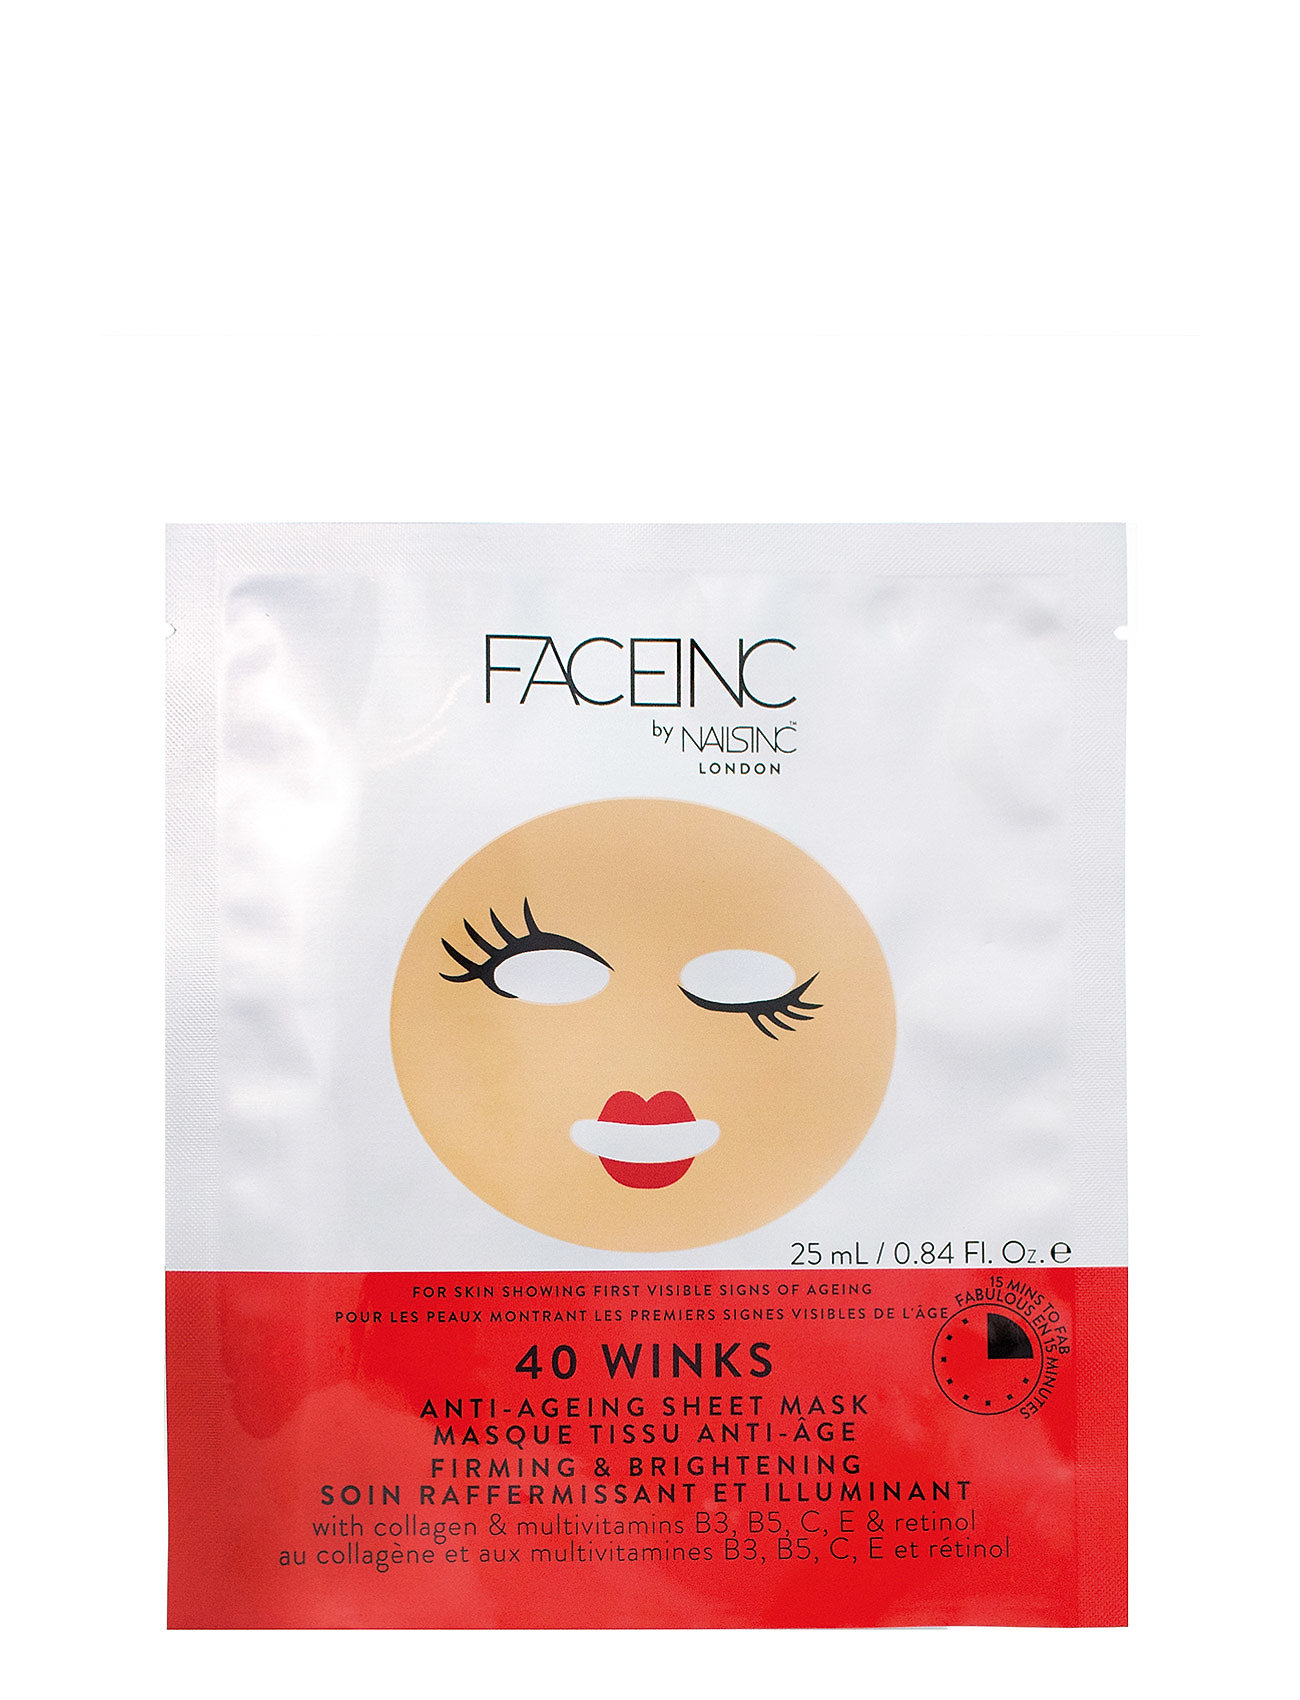 Nails Inc 40 Winks Sheet Mask - Anti-Aging - CLEAR